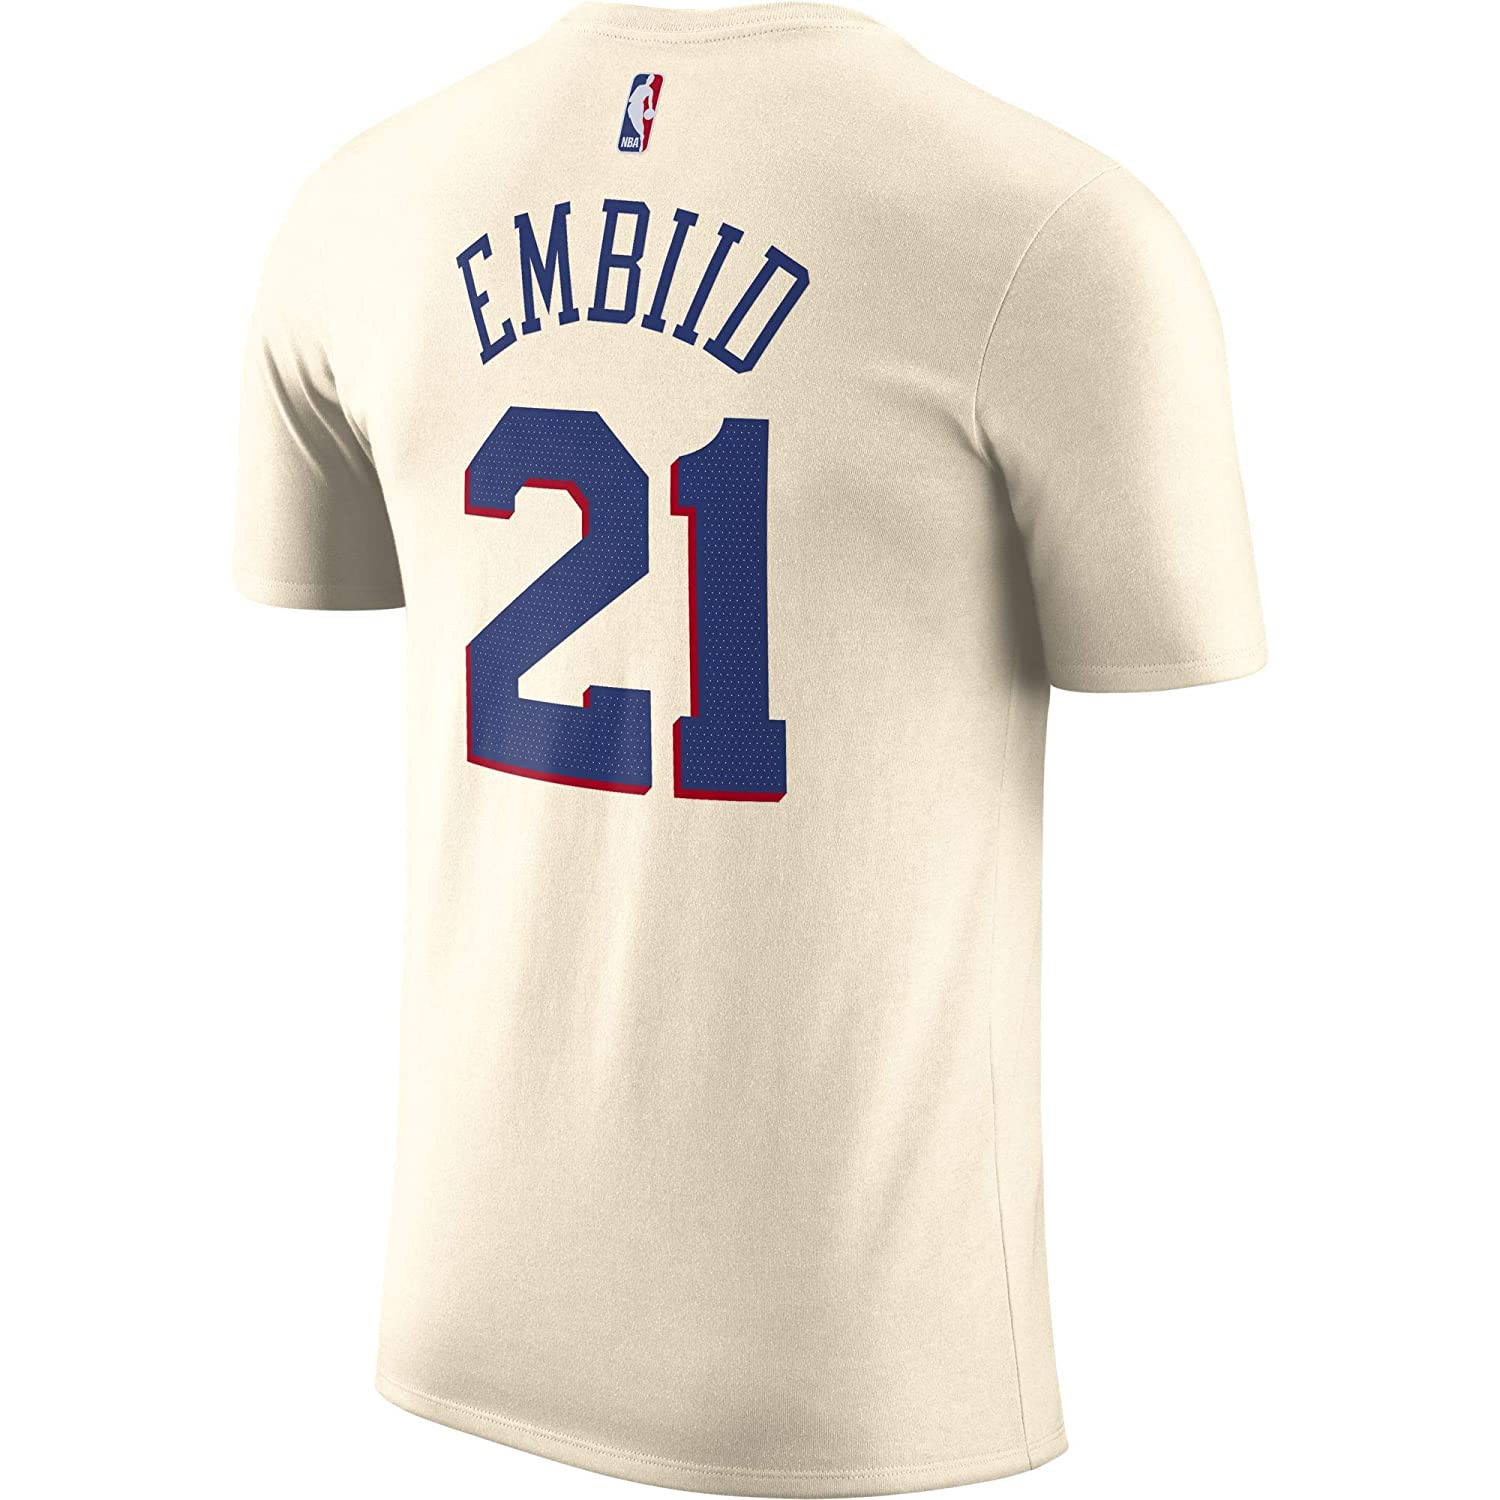 Nike NBA Philadelphia 76ers Joel Embiid 21 2017 2018 City Edition Jersey Official Name & Number, Camiseta de Niño: Amazon.es: Ropa y accesorios